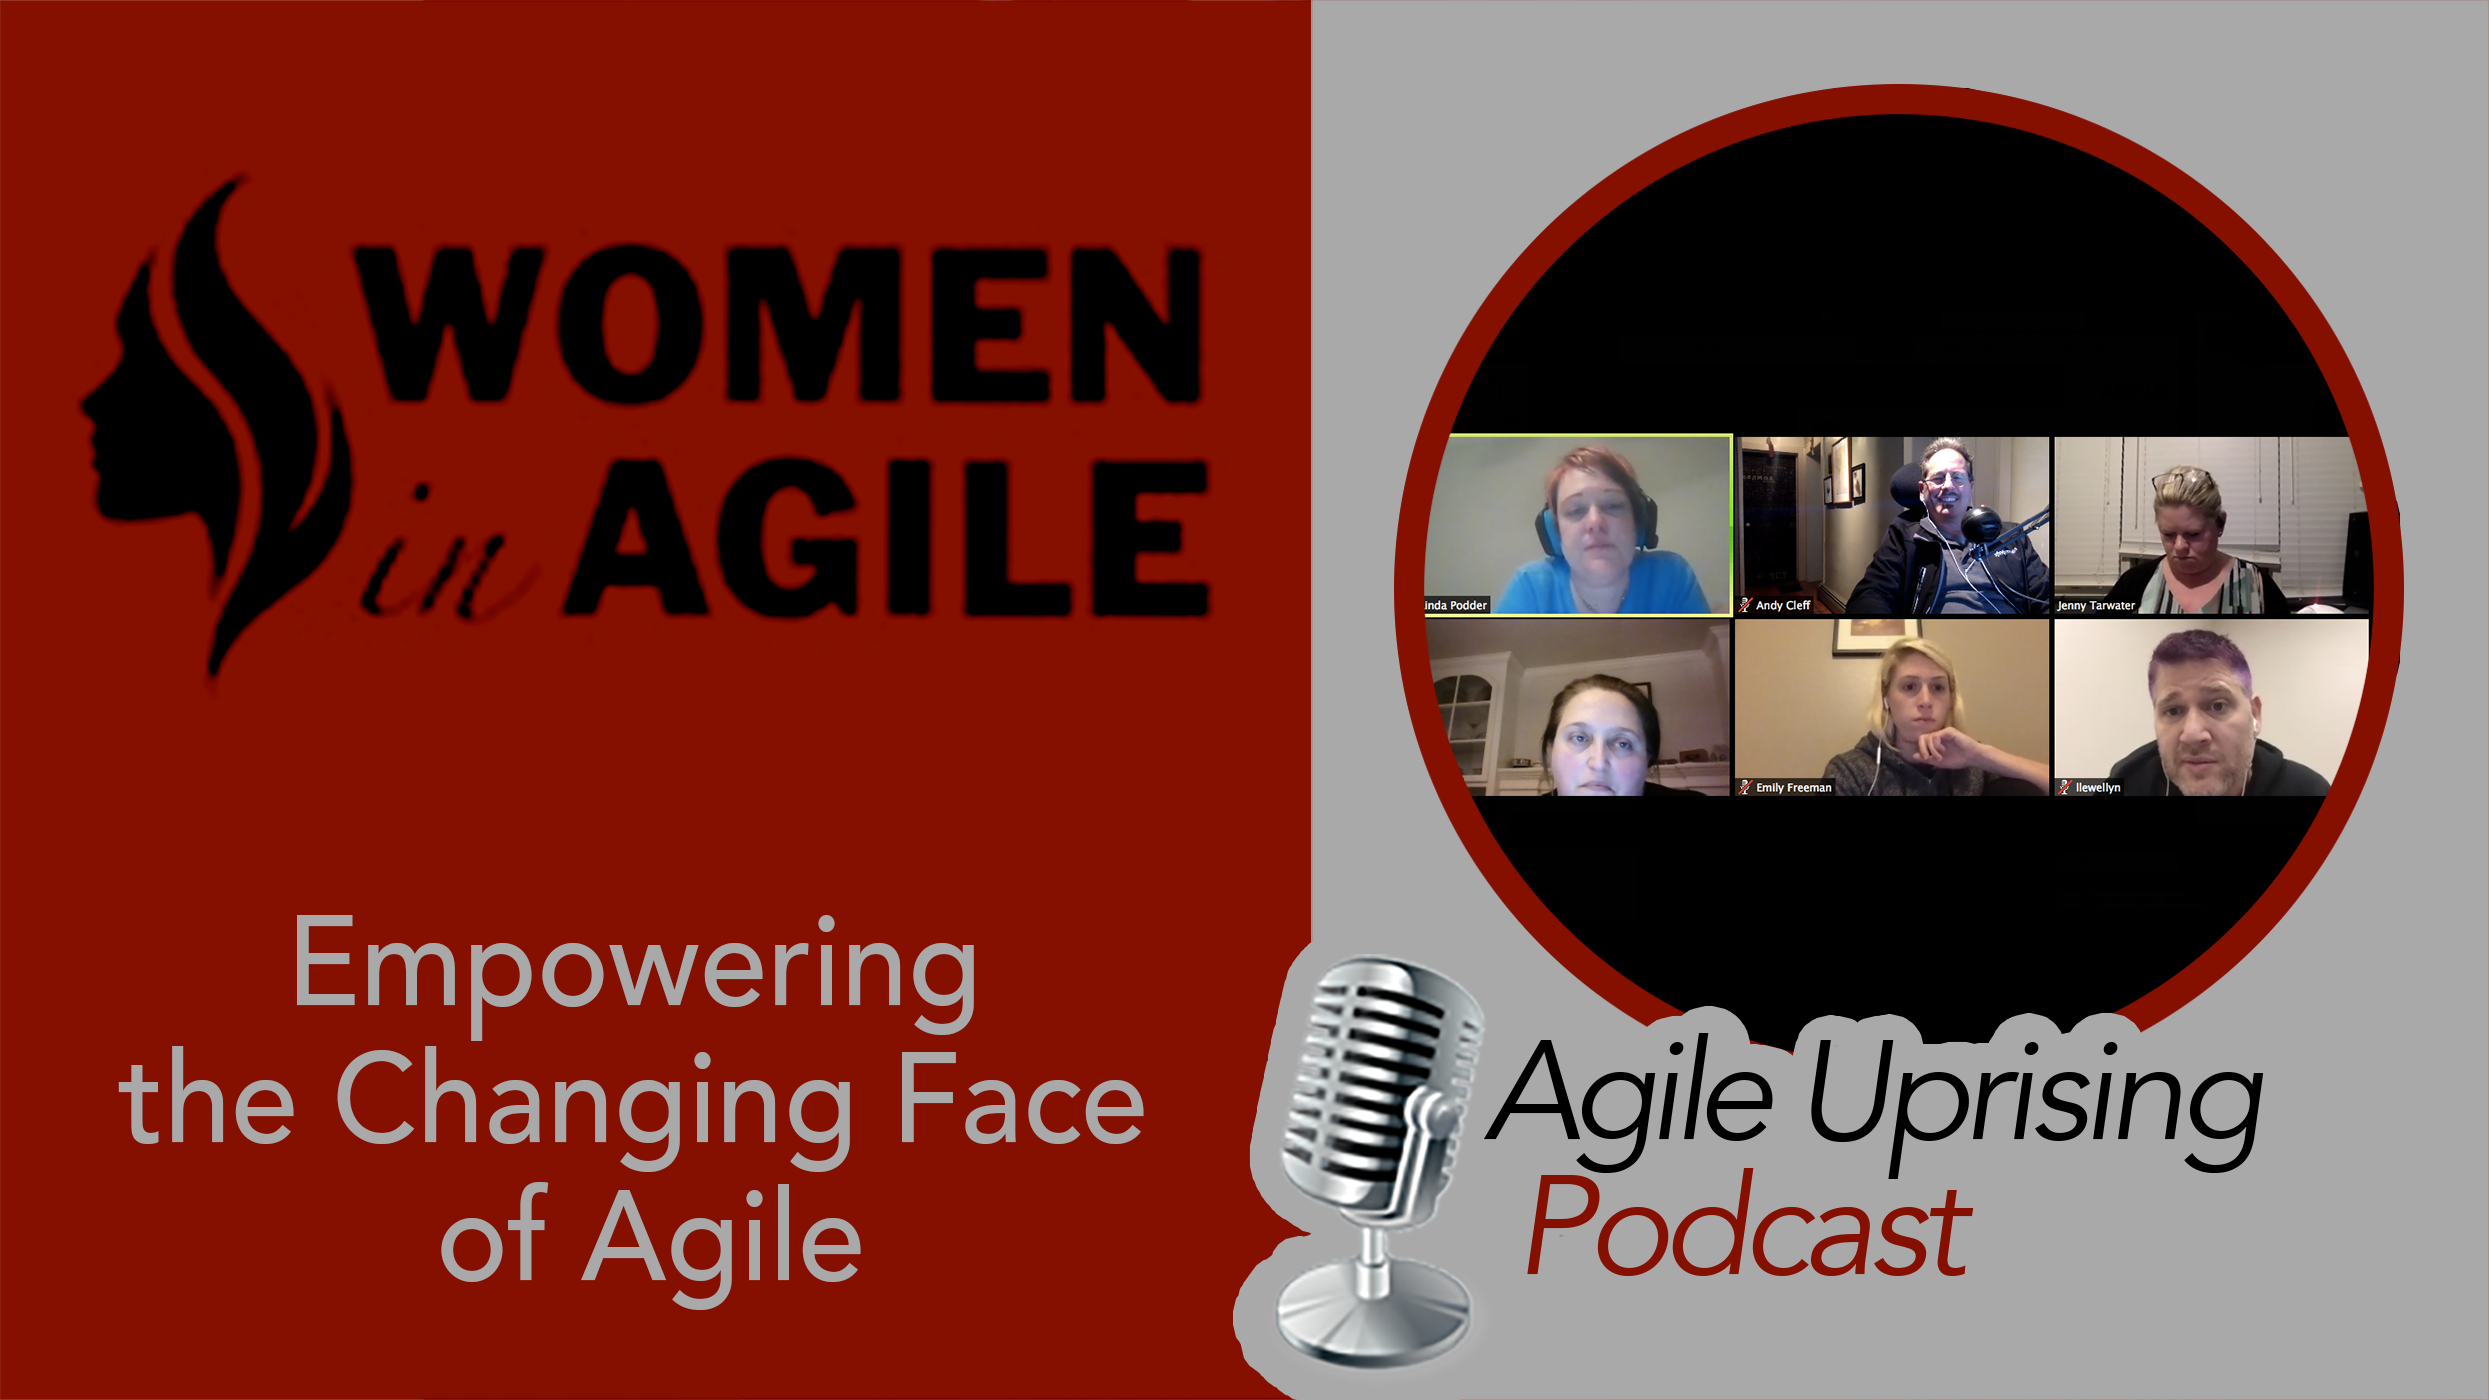 Women in Agile 2017